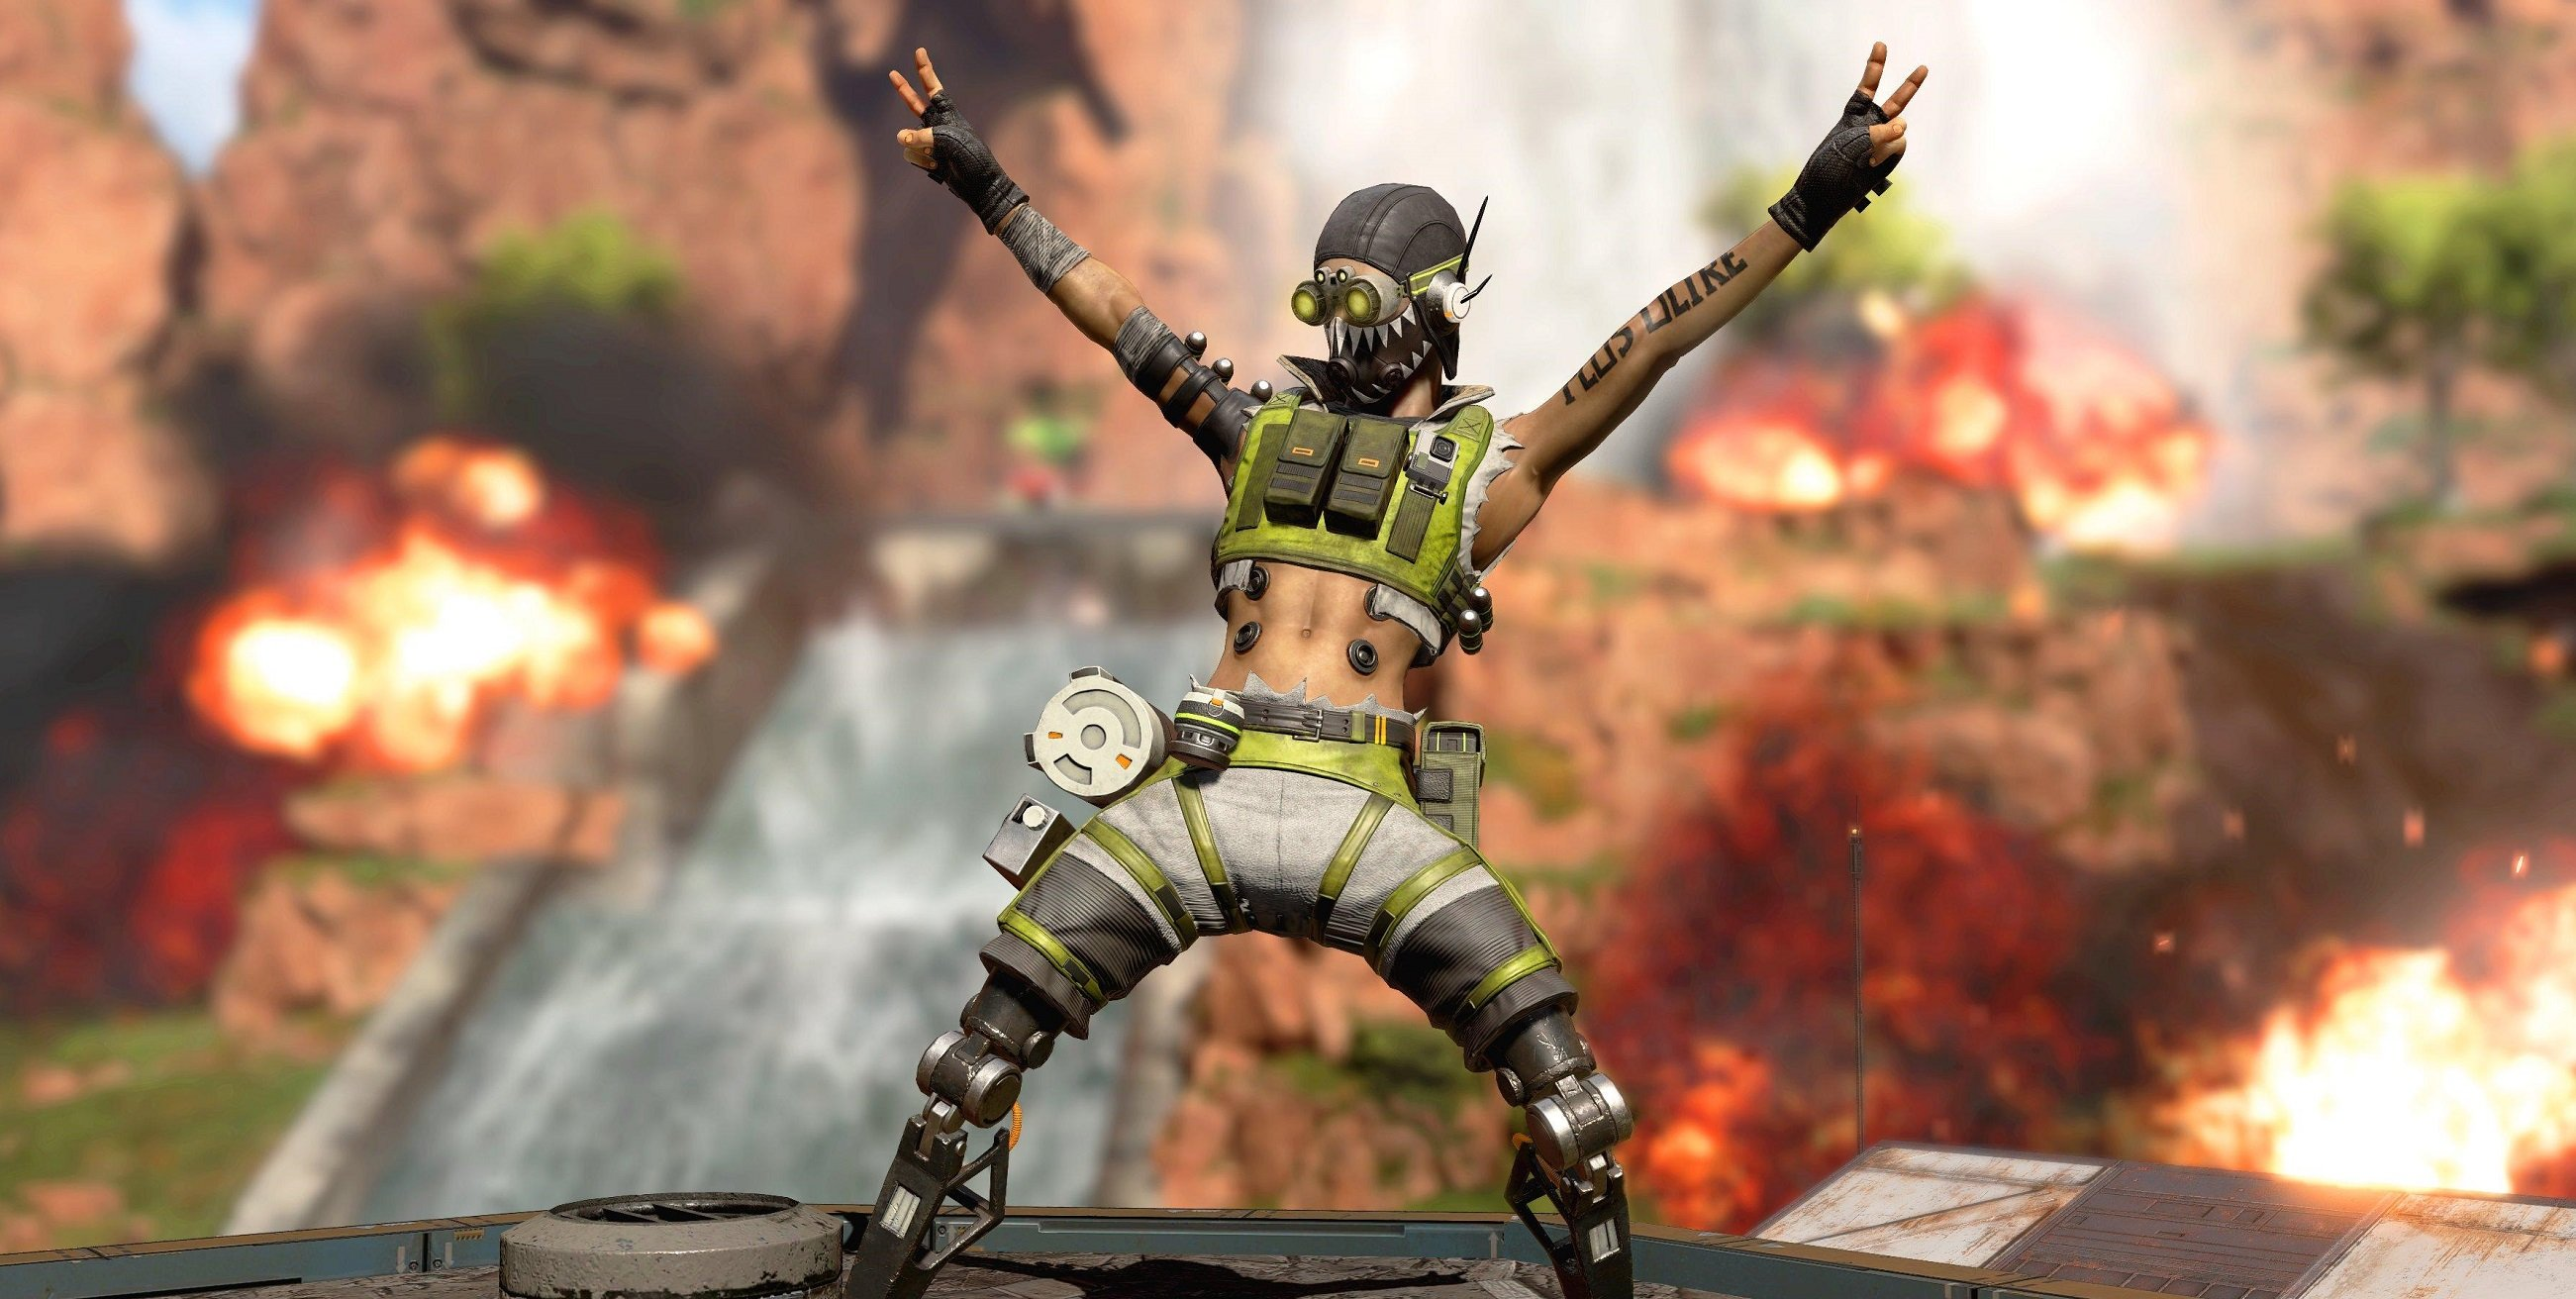 New Octane skin for Apex Legends available via Twitch Prime